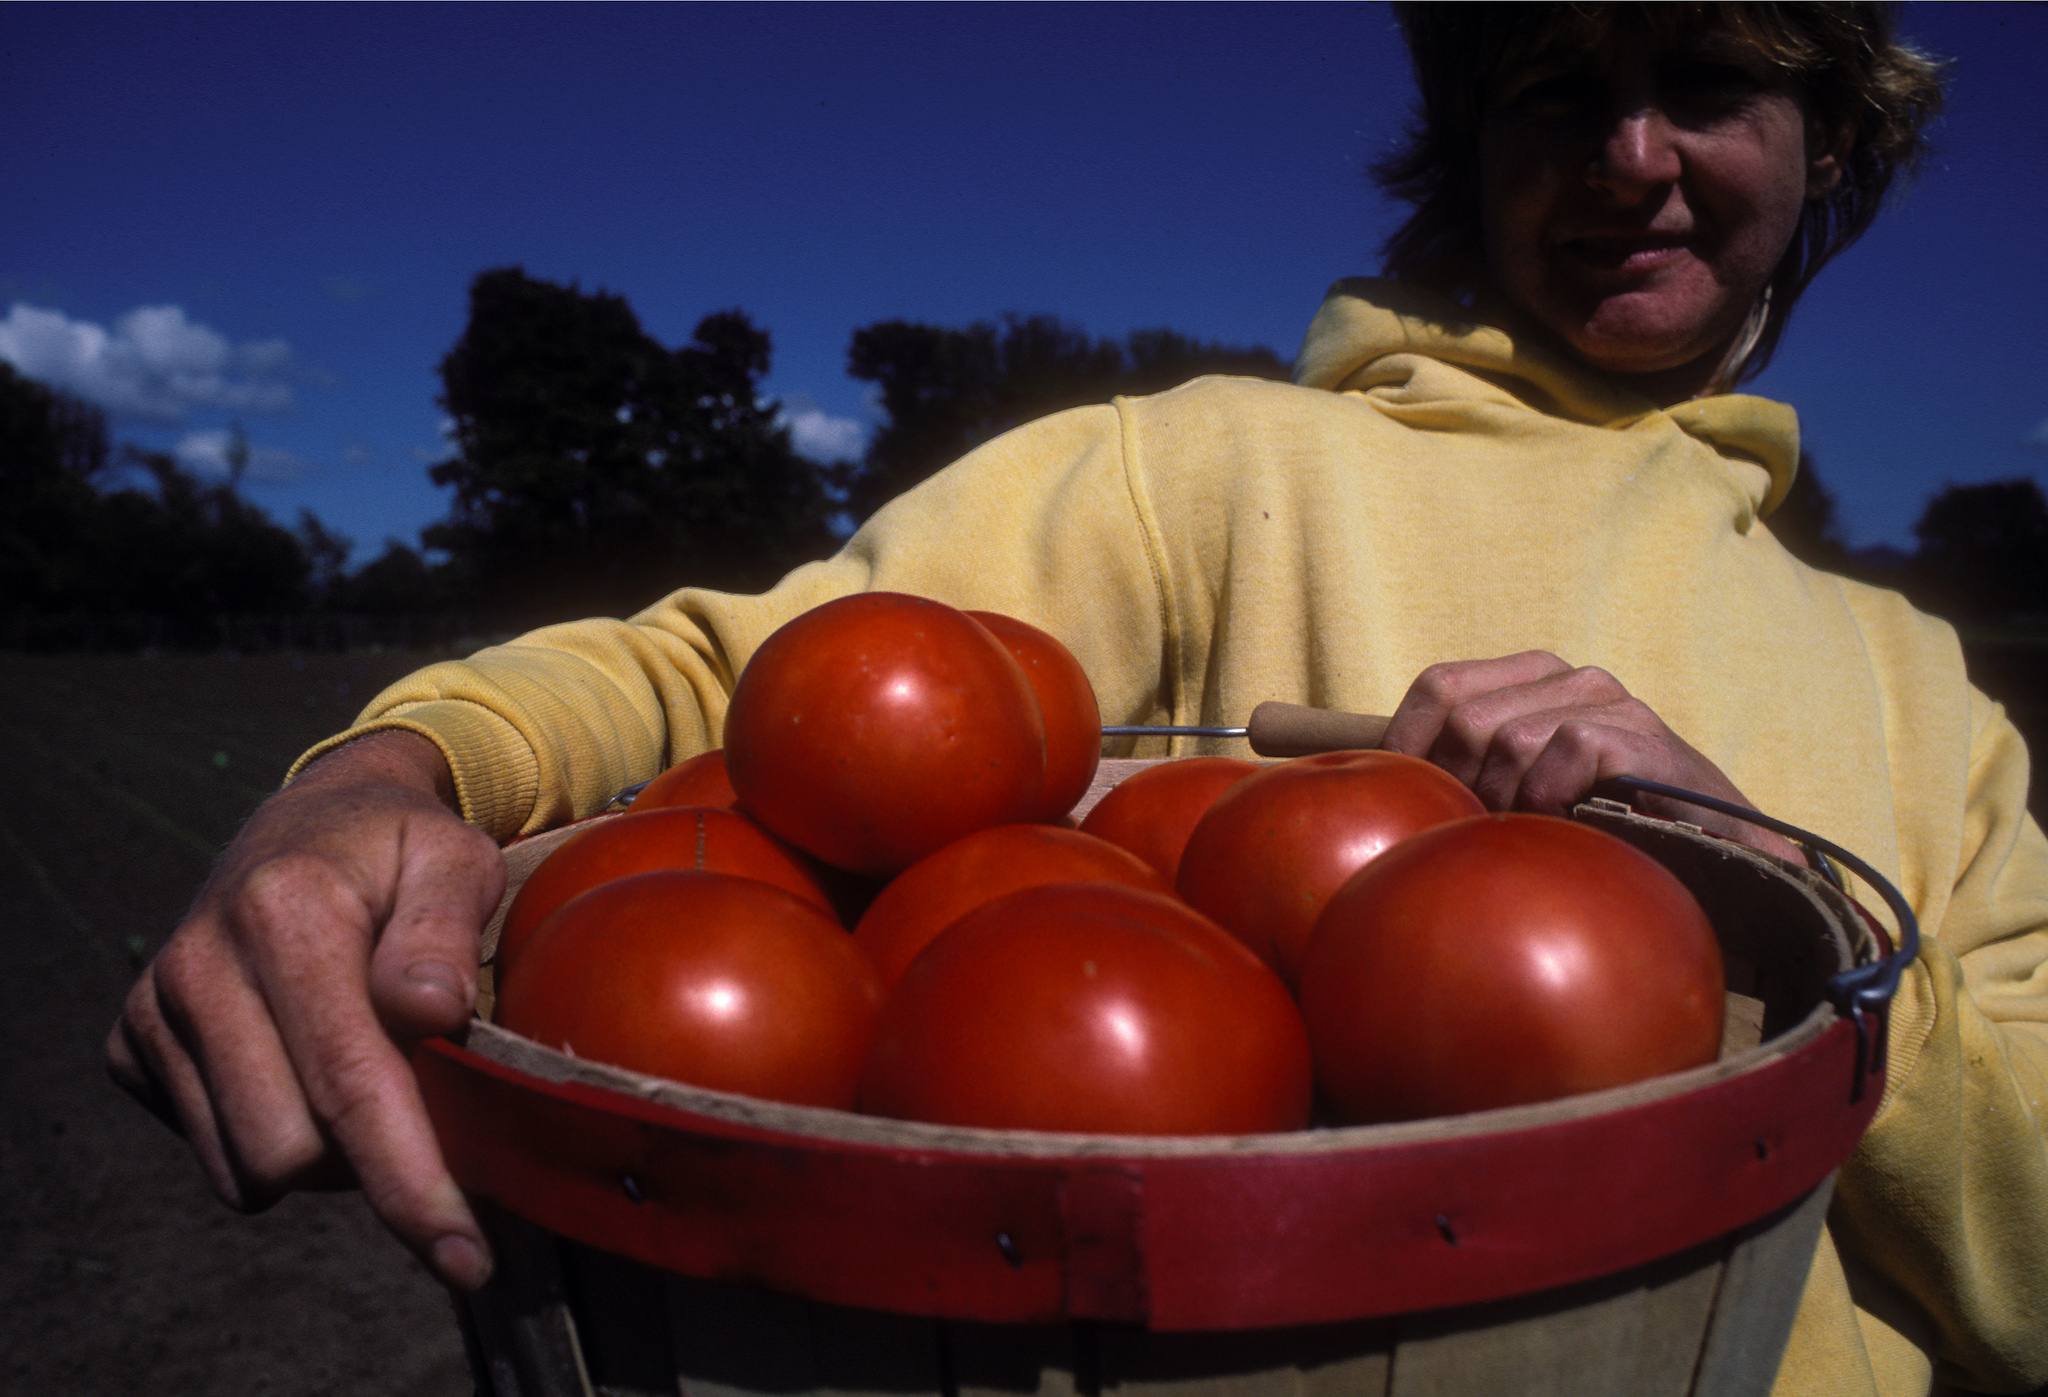 Be safe: Develop good habits from garden to table